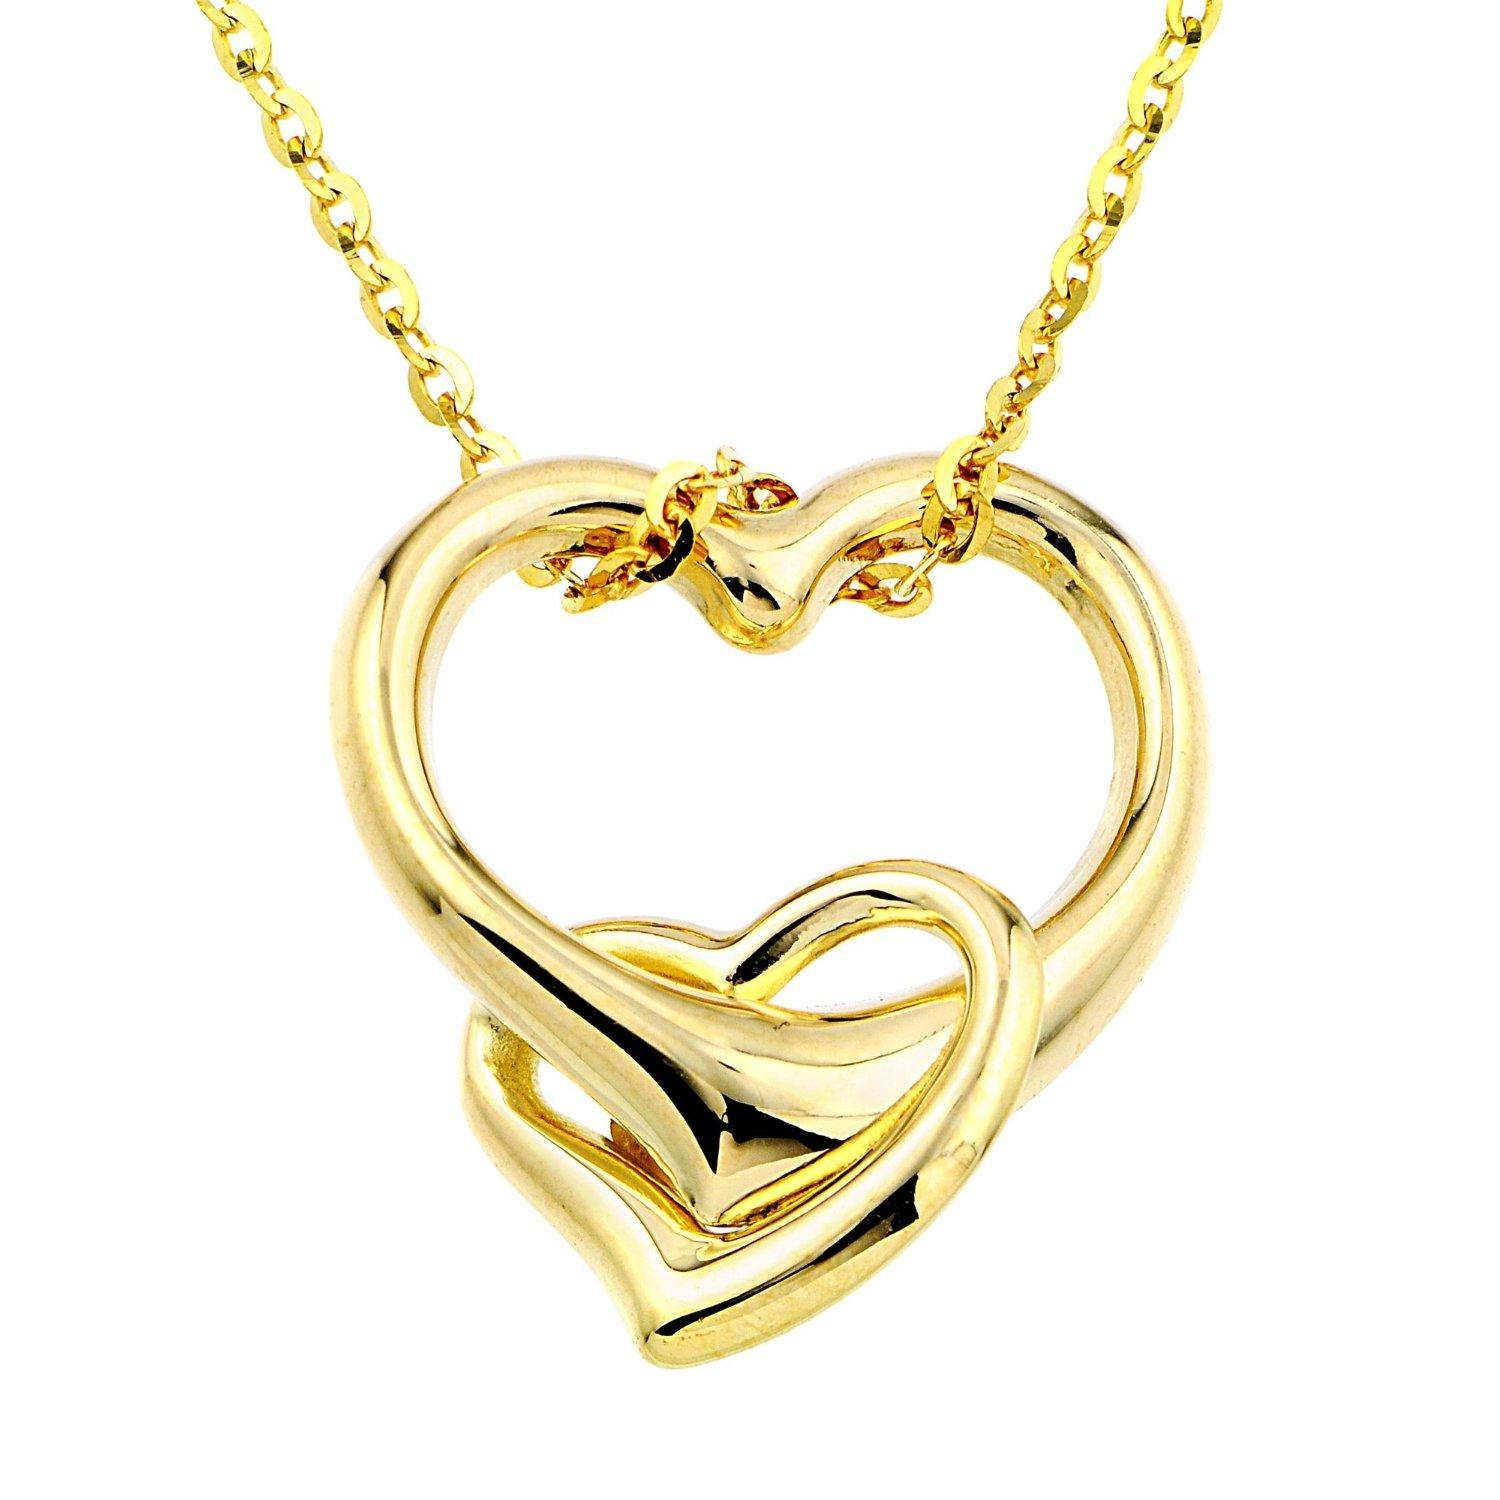 en zm necklace kay sterling heart diamond kaystore accents mv silver pendant double